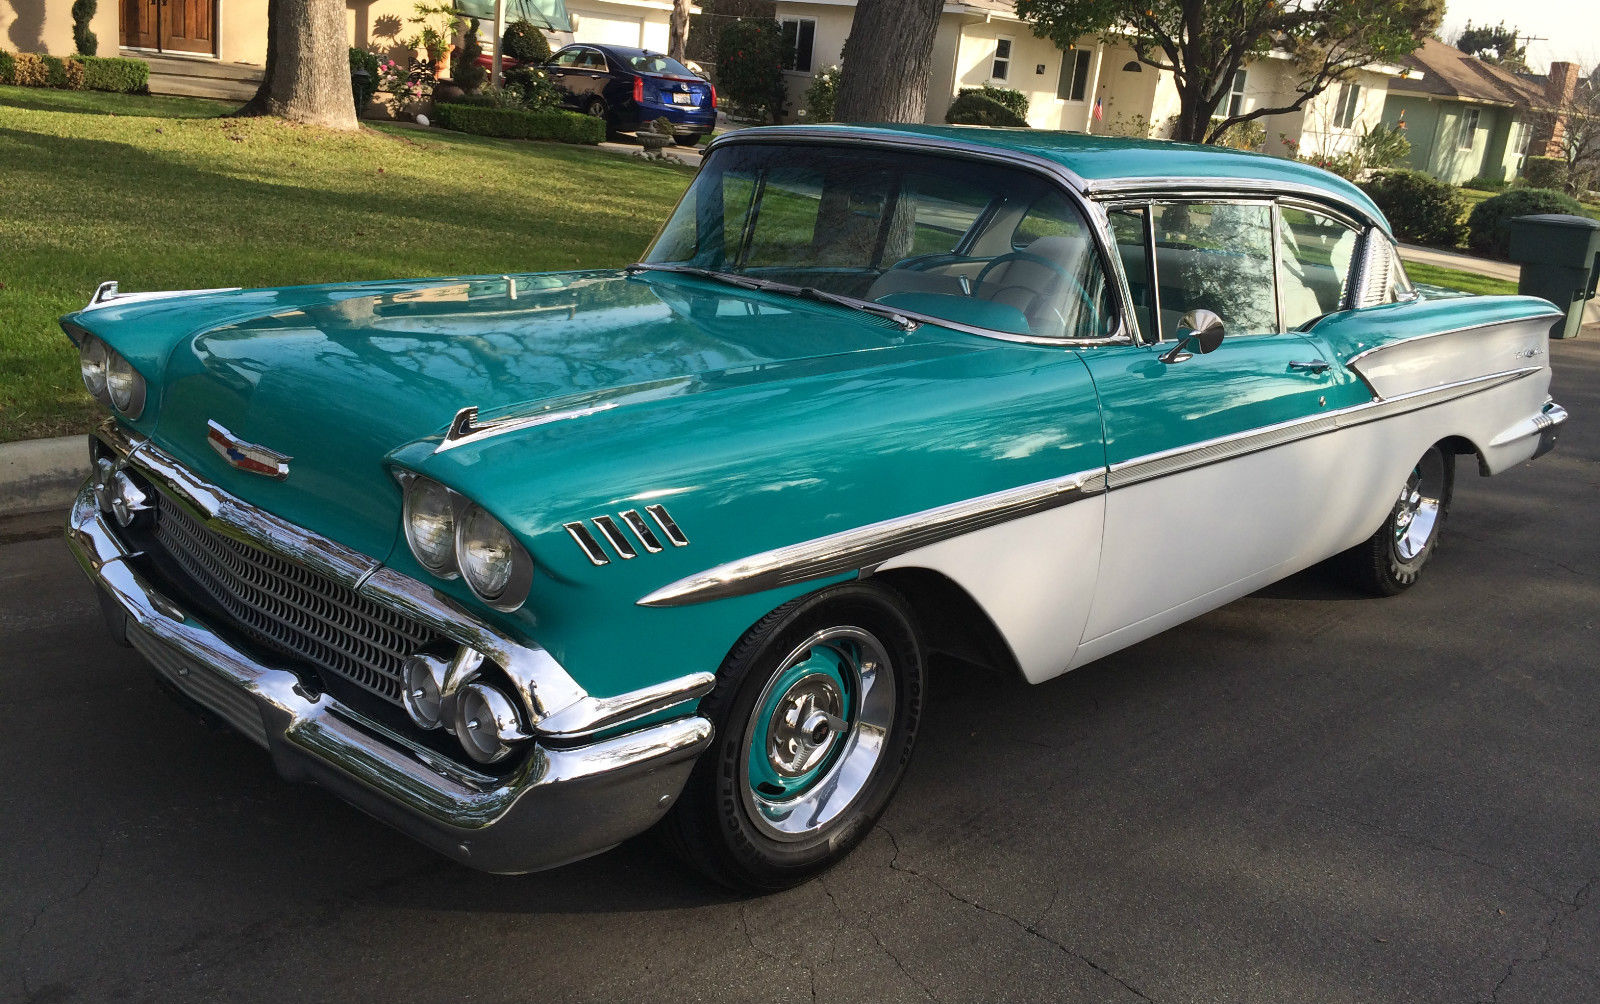 1958 chevy bel air sport coupe 150 210 classic chevrolet. Black Bedroom Furniture Sets. Home Design Ideas